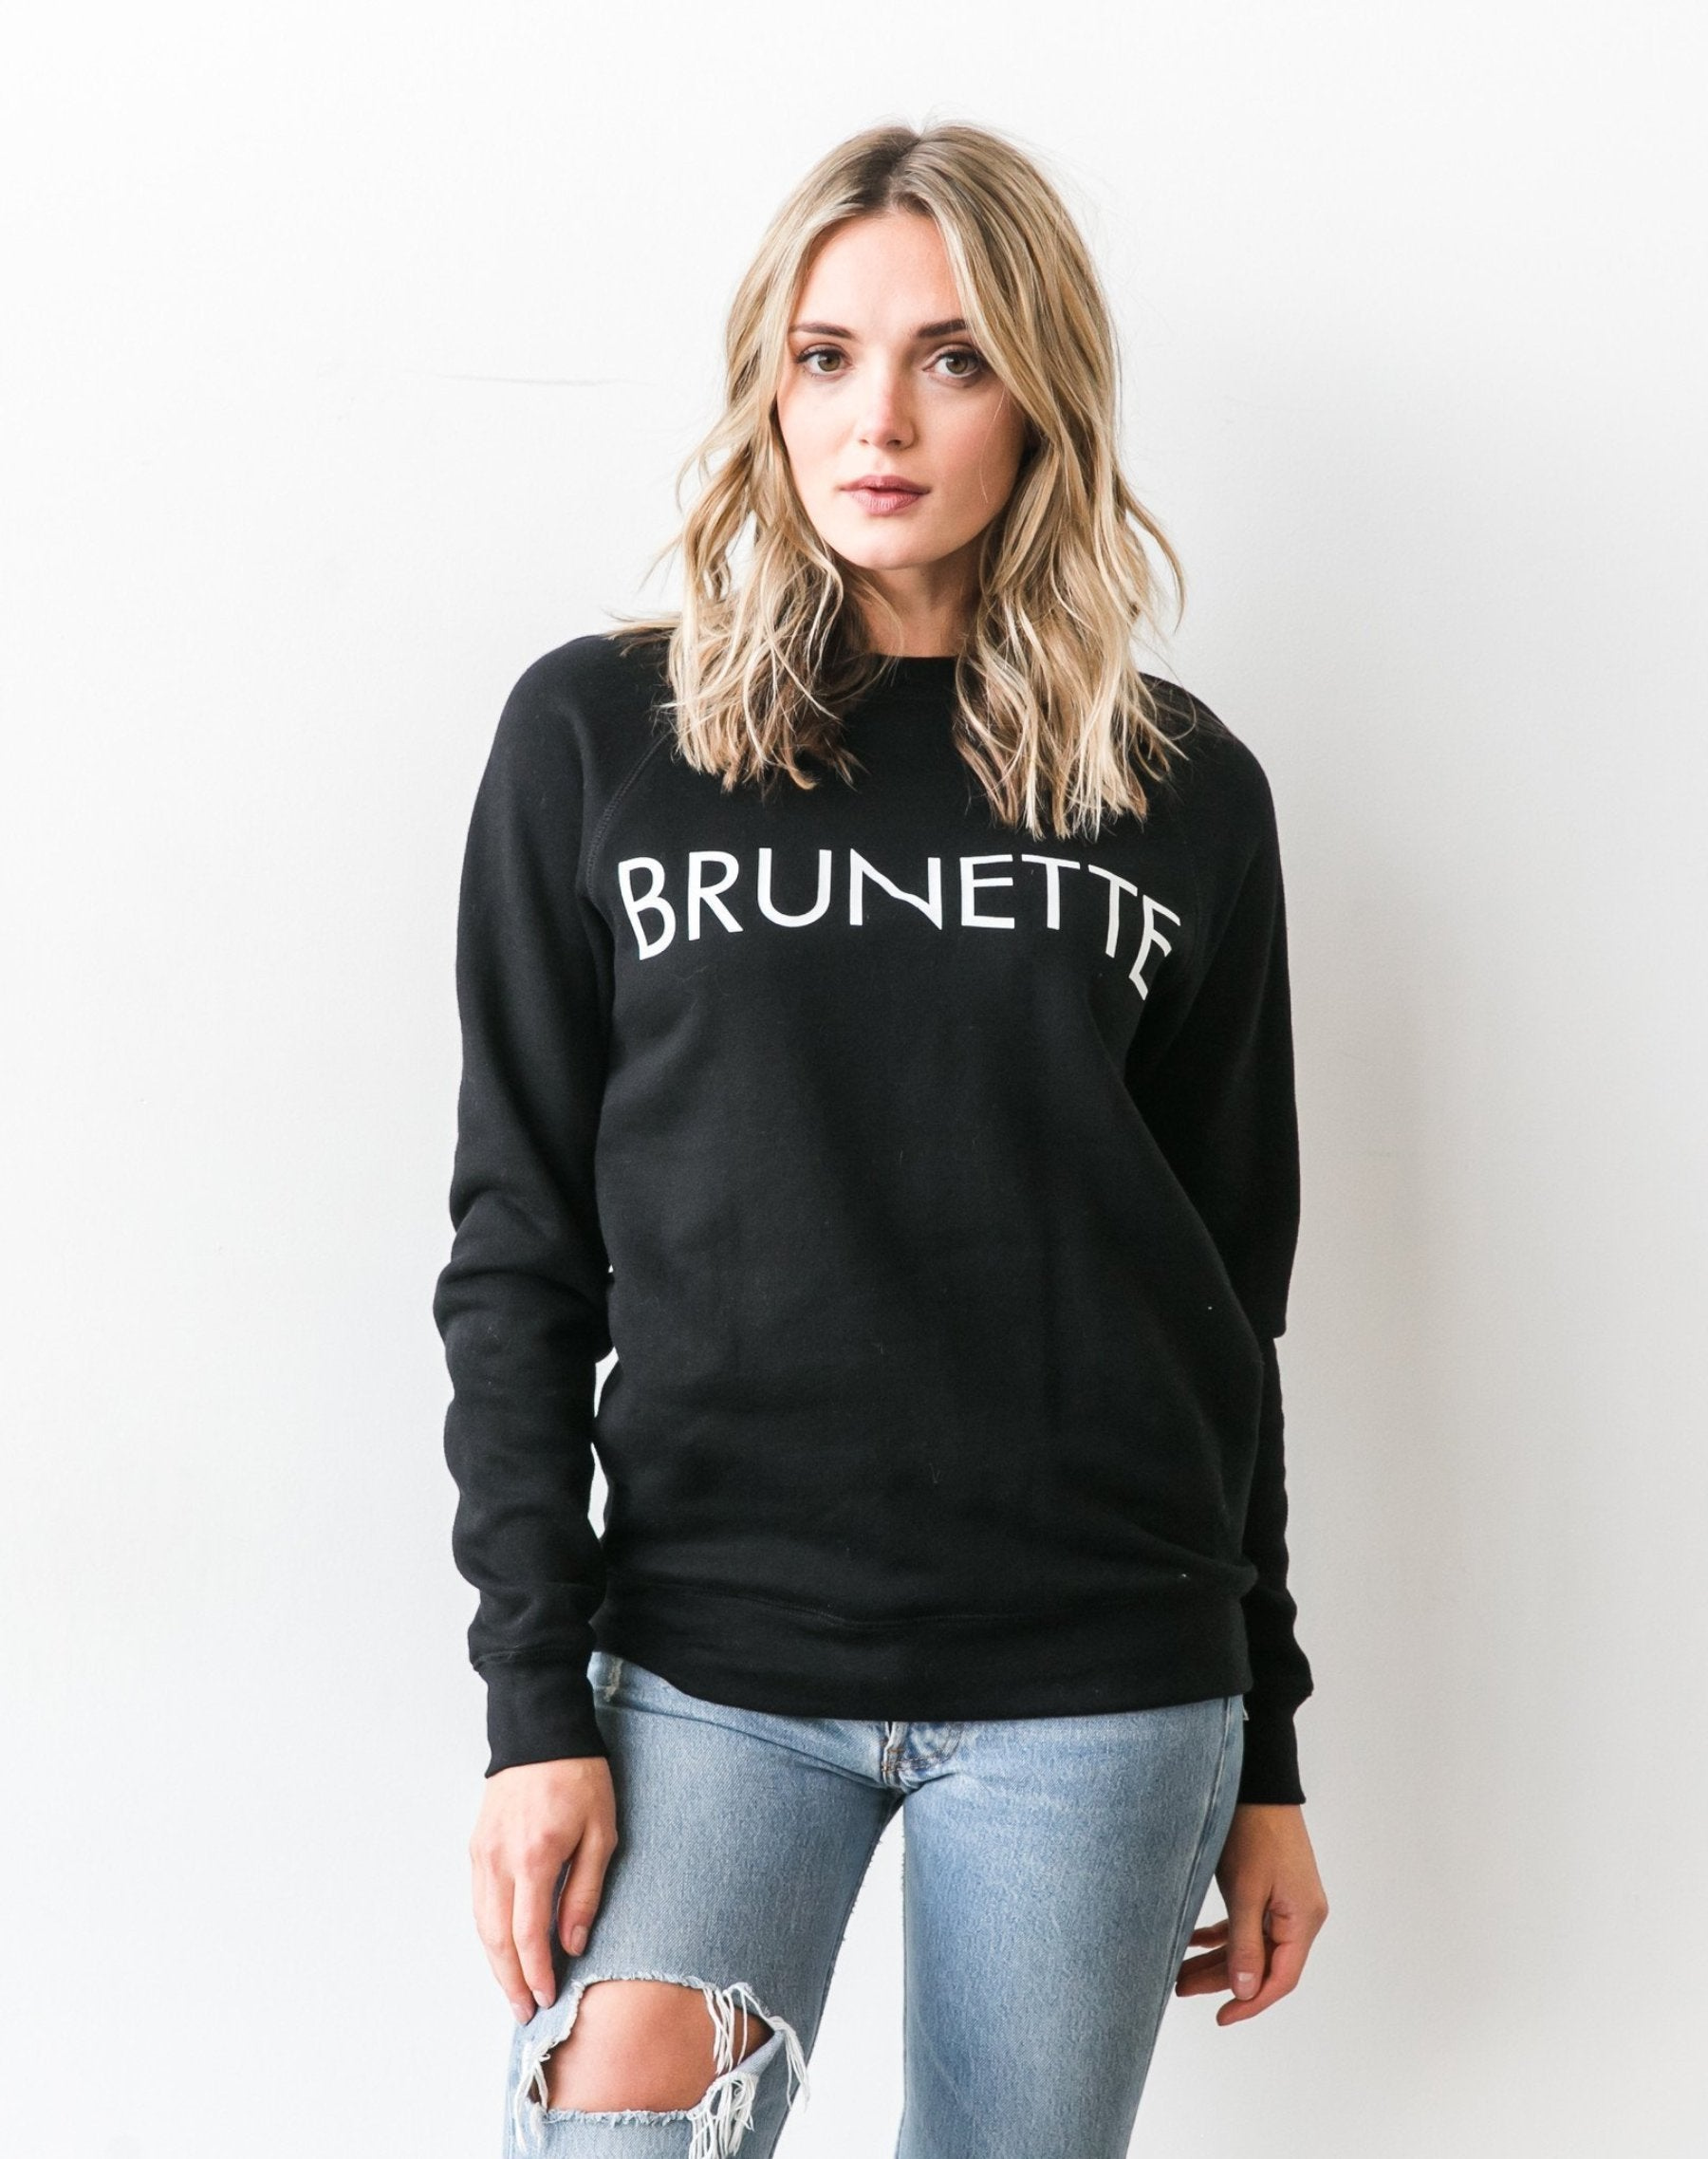 """BRUNETTE"" Crew Sweater- Black - Sweatshirt - The Valley Boutique - Canada Online Shopping"